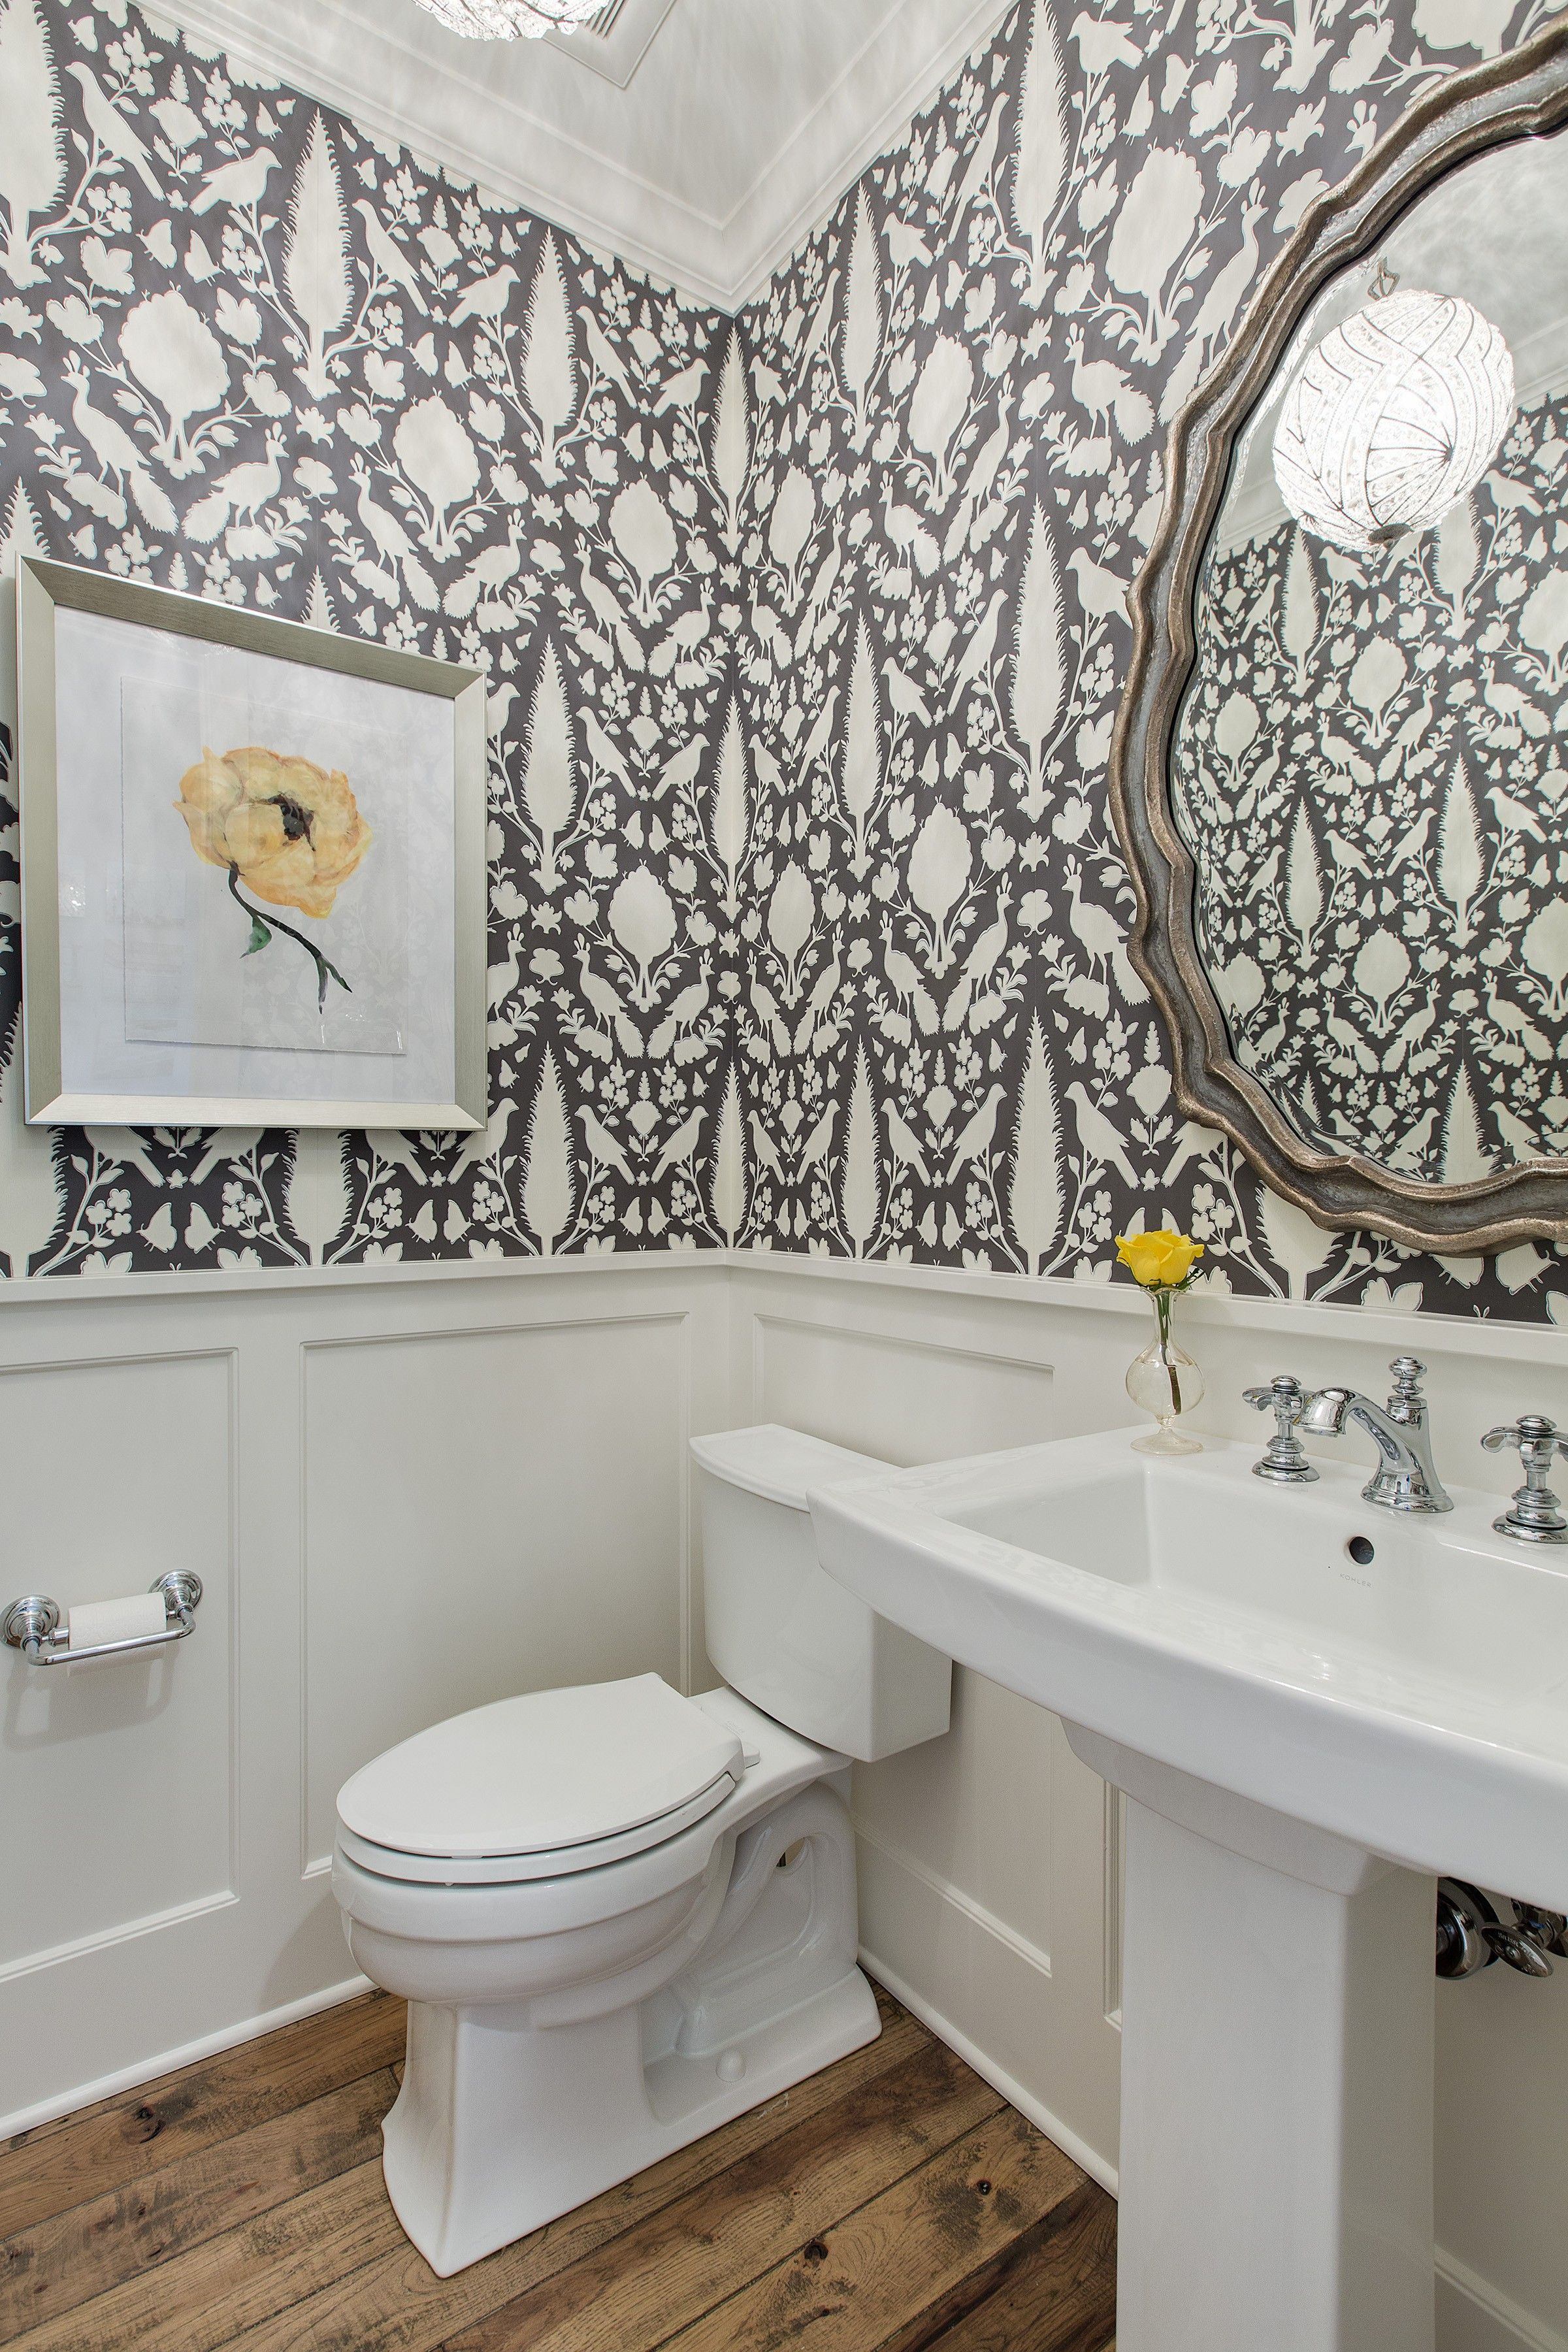 Powder Room Walls Powder Room Small Powder Room Decor Powder Room Wallpaper